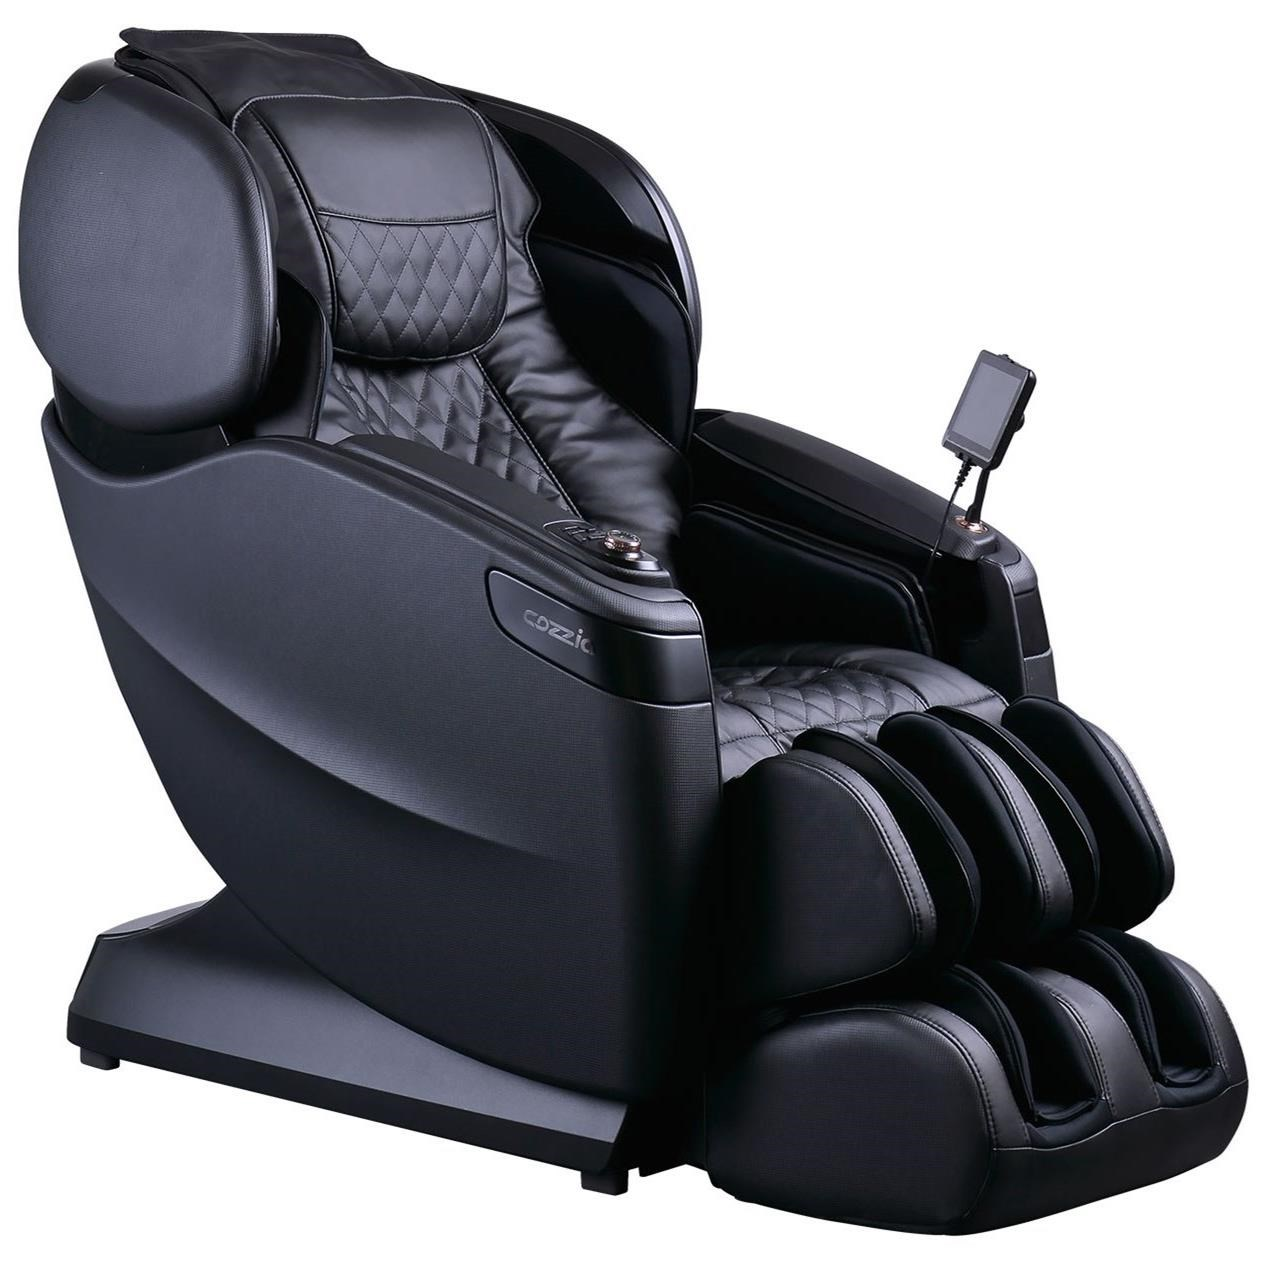 CZ-710 Power Massage Recliner by Cozzia at Northeast Factory Direct